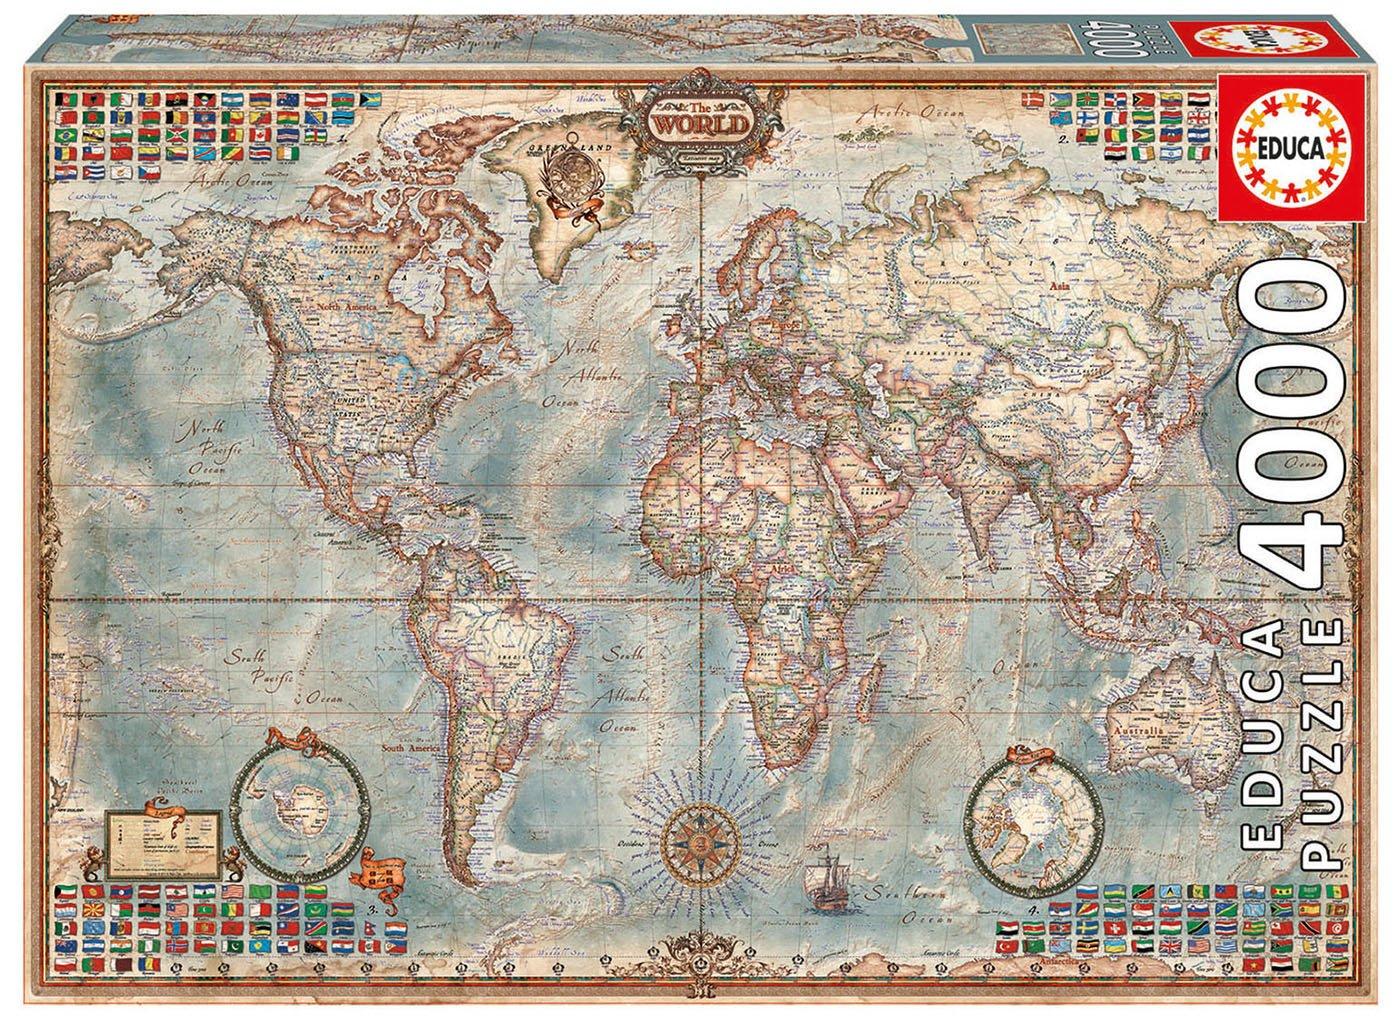 Amazon.com: 4,000 Piece Puzzle - The World Map: Toys & Games